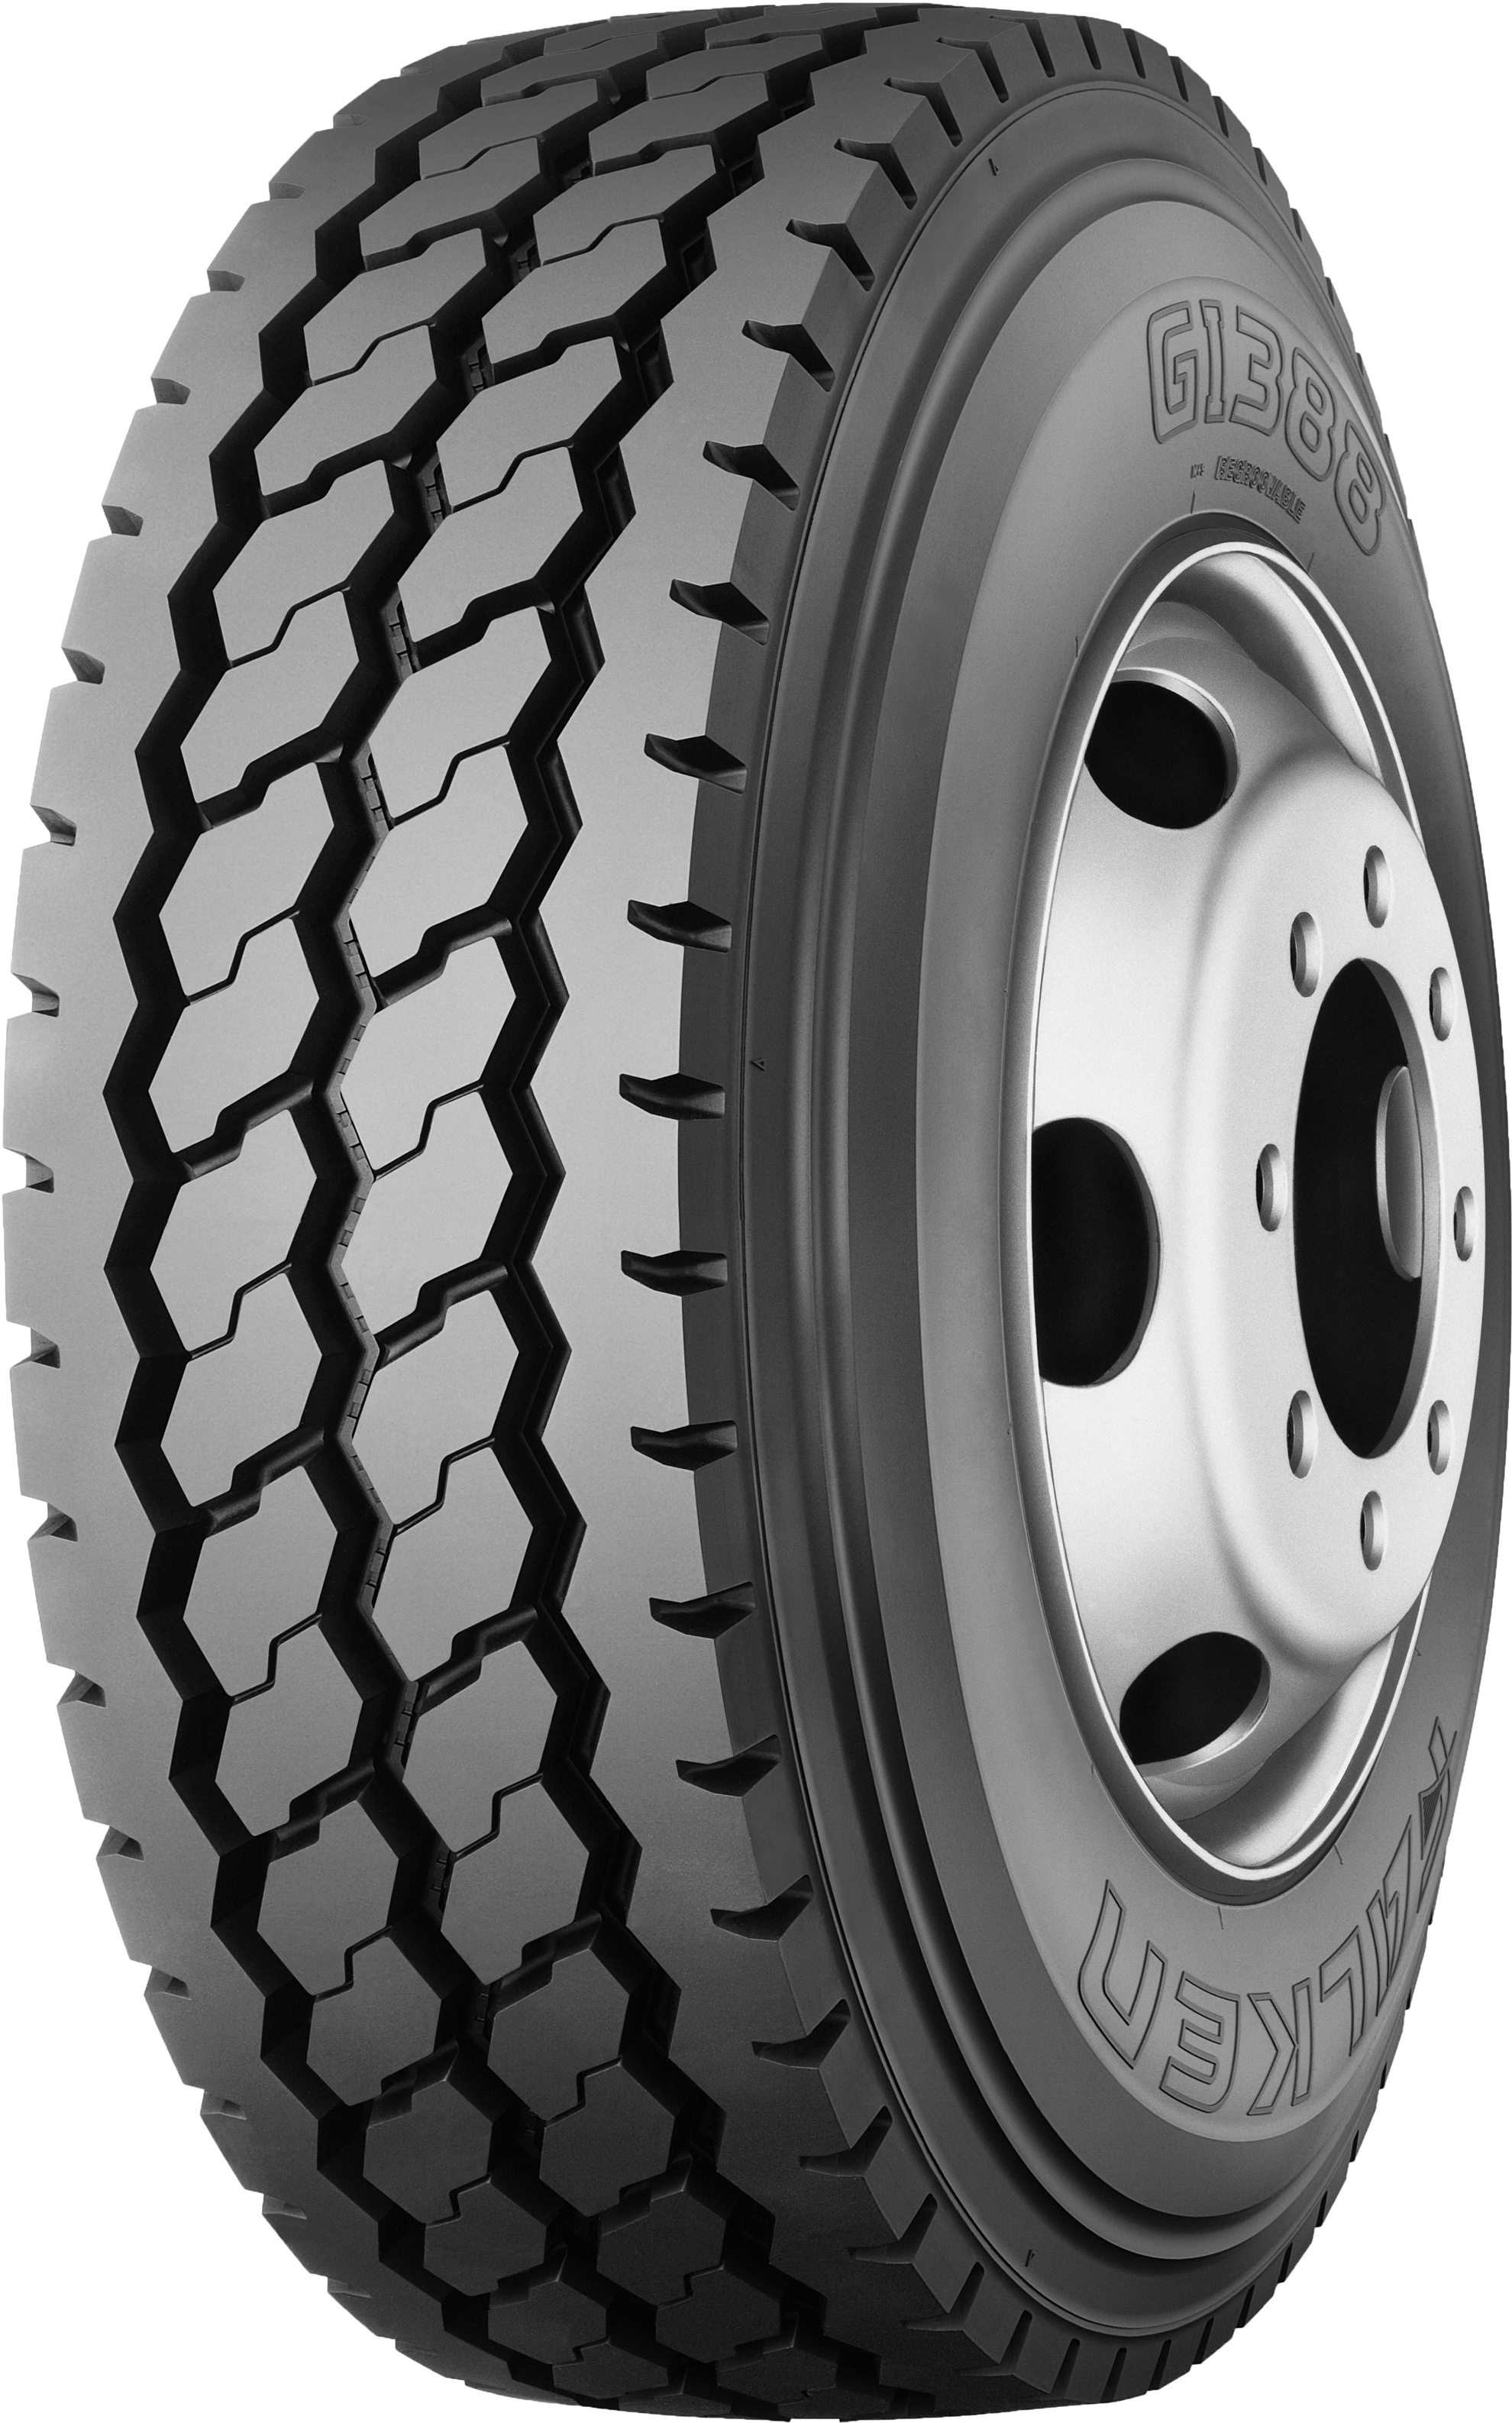 Falken S Latest On Off Road Truck Tyres Help Mixed Use